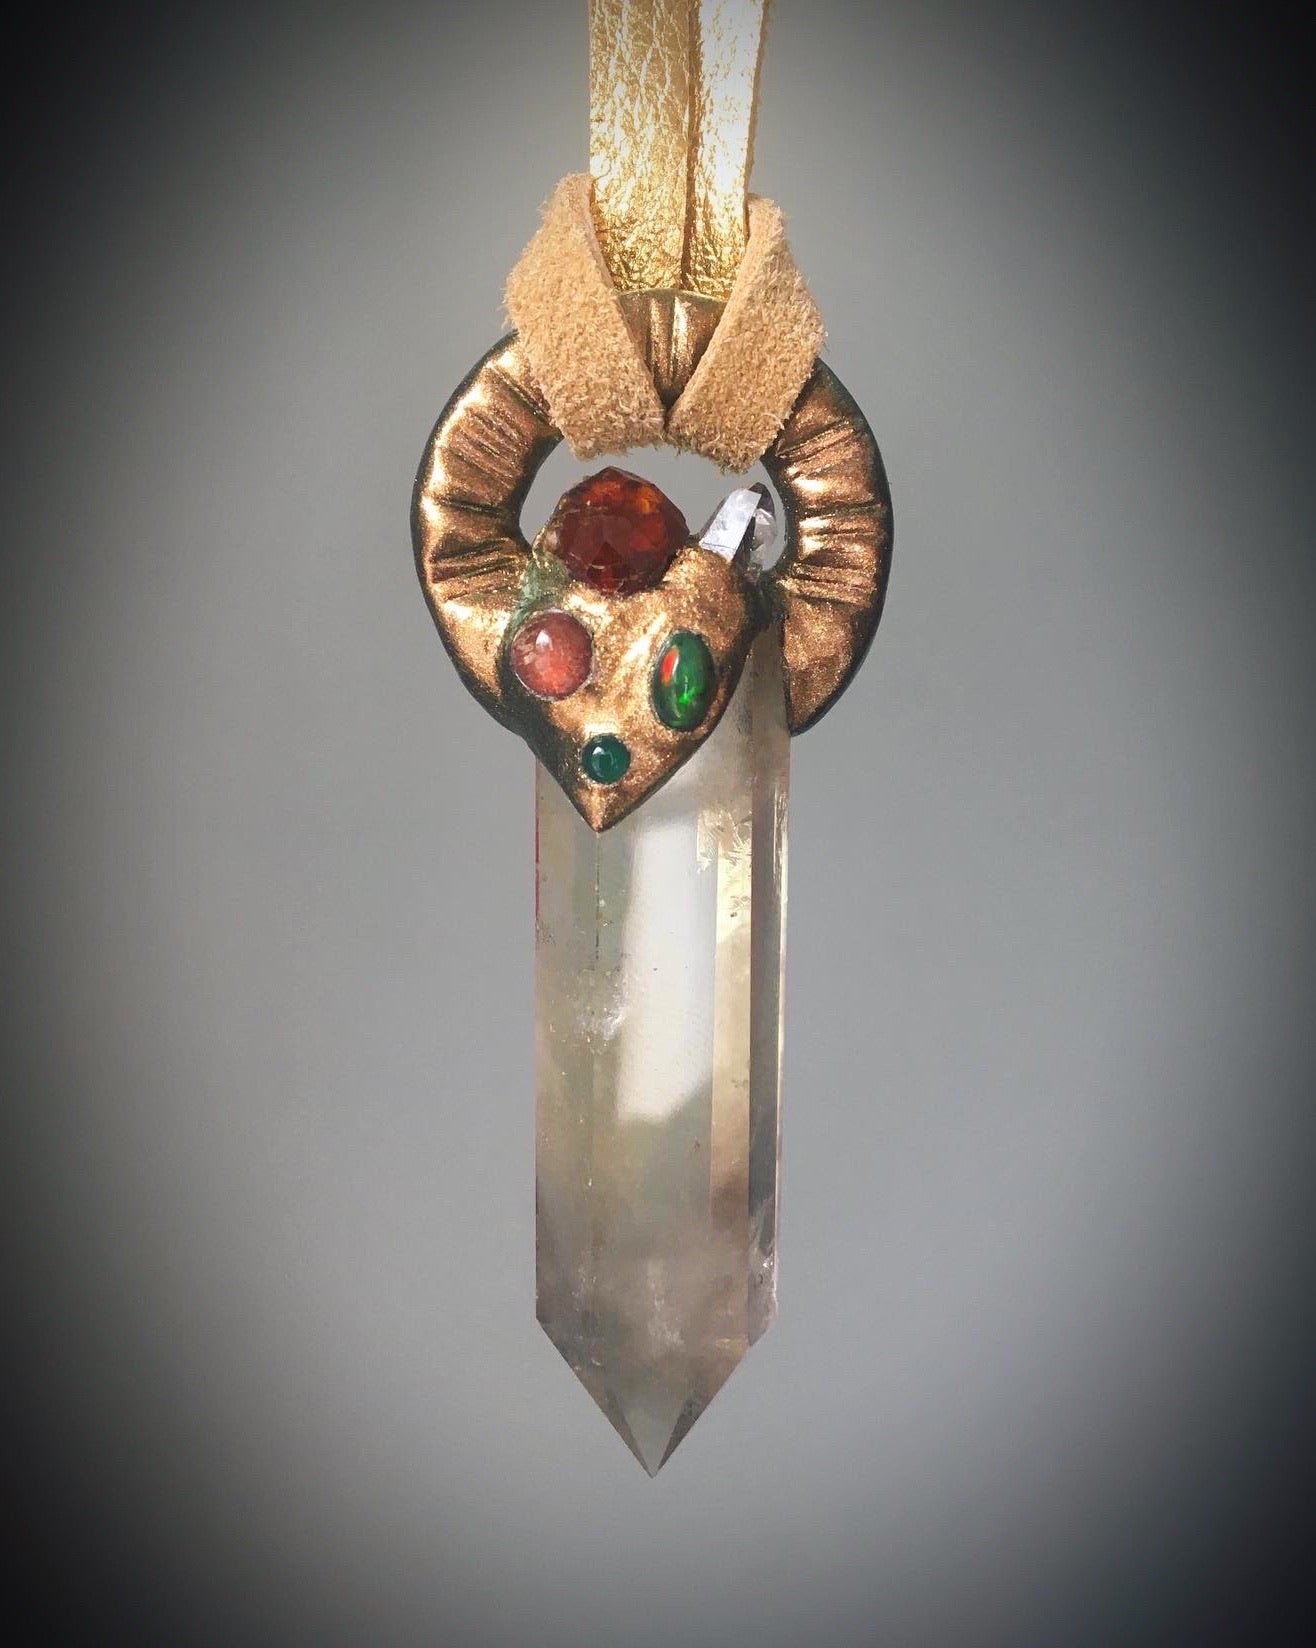 Citrine with Garnet, Black Opal, Pink Tourmaline, Arkansas Quartz and Green Chalcedony Talisman